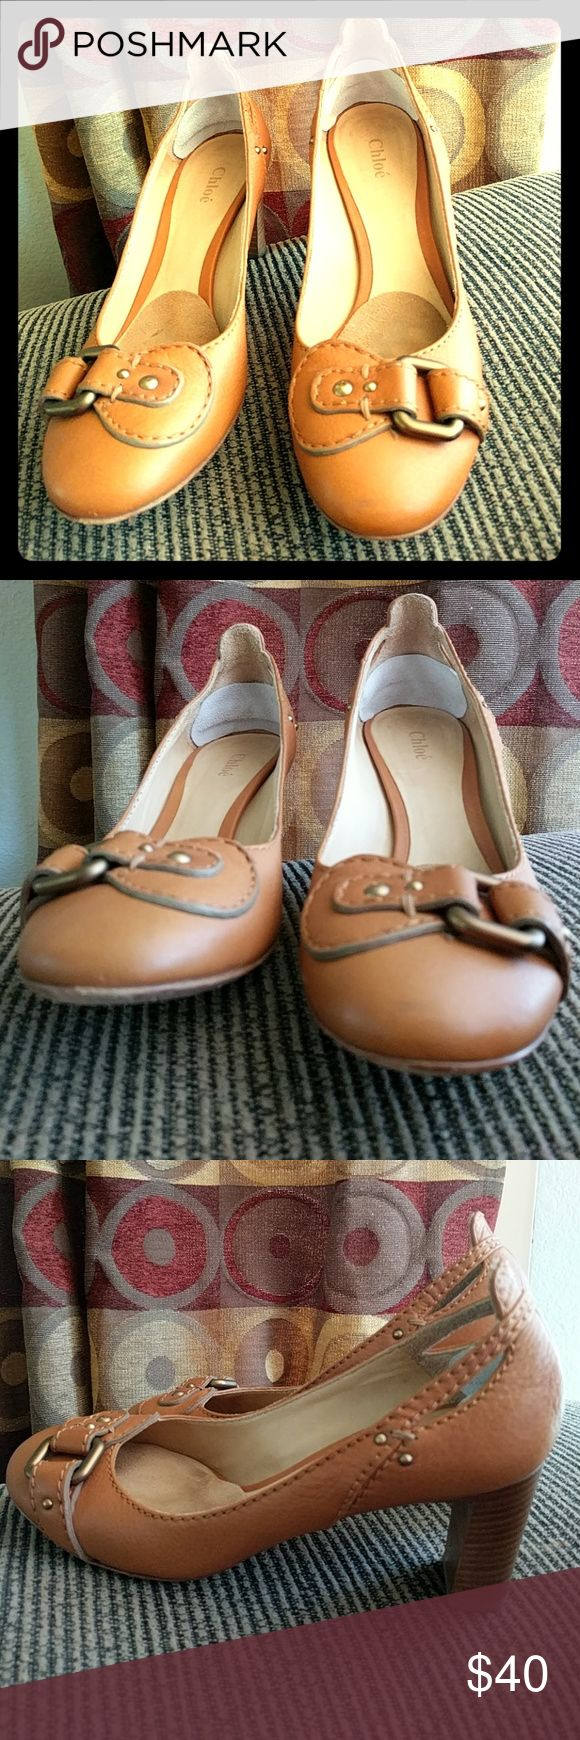 Chloe Brown Stacked Heel Pumps sz 7 Chloe Buckle Pumps ++Permanent marker/stickers on bottom ++ I wear a 7.5 and they are tight so definitely closer to a 7 with a narrower toe box Sz 38 Chloe Shoes Heels